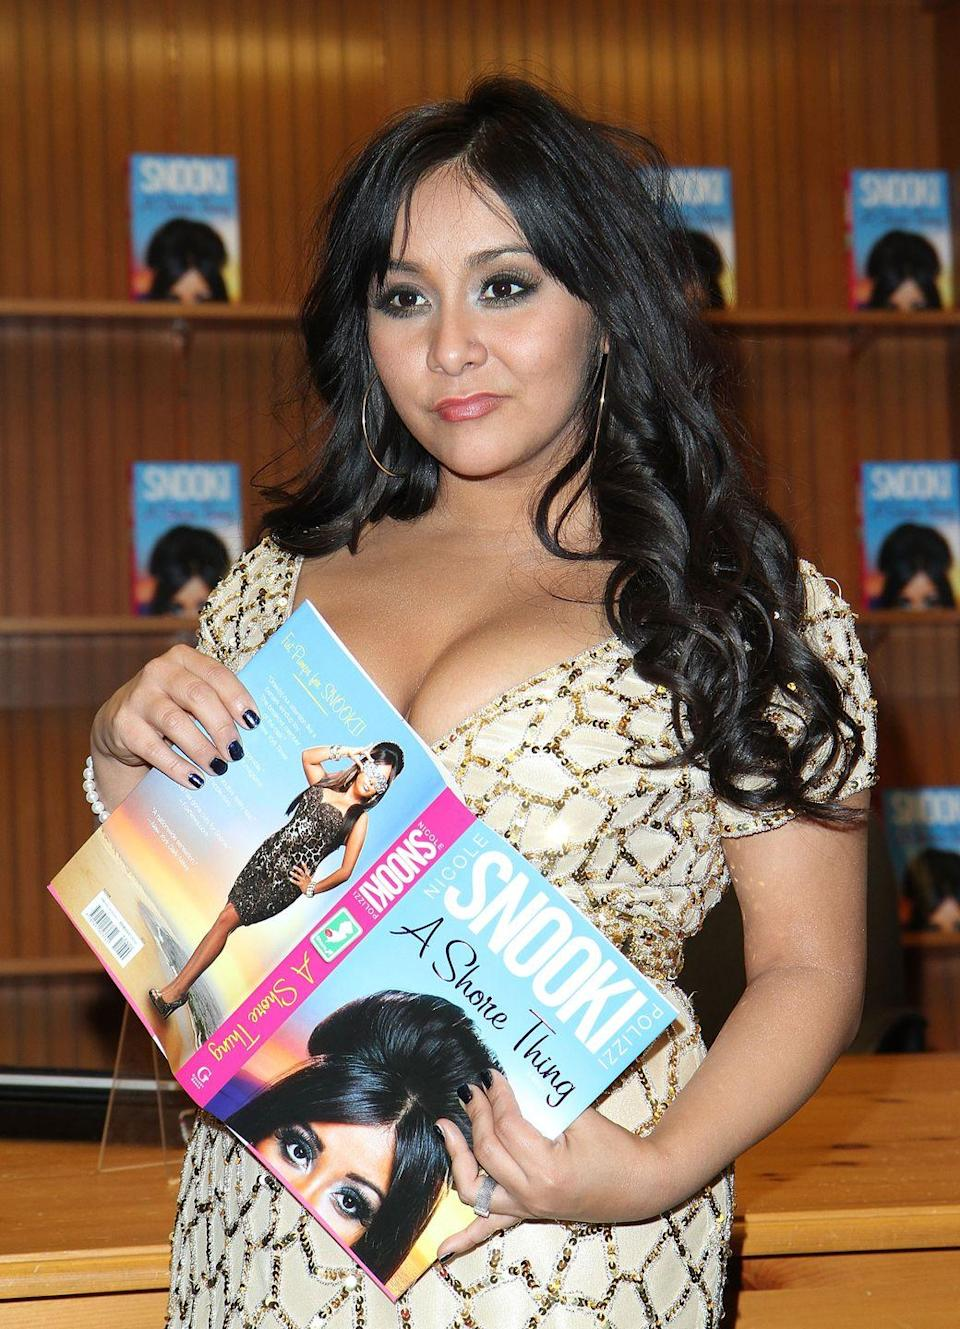 "<p>The life of Nicole ""Snooki"" Polizzi may have seen like it was stranger than fiction at times, but the Jersey Shore star published her novel in 2011. Set in a place that Snooki is more than a little familiar with, Seaside Heights, N.J., <em>A Shore Thing</em> tells the story of Gia Spumanti, a party girl who is focused on having a sexy summer. </p><p>But despite the seemingly familiar plot, Snooki told <a href=""https://www.reuters.com/article/us-books-snooki/jersey-shore-star-snooki-turns-novelist-idUSTRE70A61520110111"" rel=""nofollow noopener"" target=""_blank"" data-ylk=""slk:Reuters"" class=""link rapid-noclick-resp"">Reuters</a> she felt like she kept people on their toes in other ways. ""I didn't want to do what everybody expected me to do, like an autobiography, or how to be a guidette,"" she said. ""I wanted to surprise everybody, so I did a novel.""</p><p>Unfortunately, <a href=""https://www.hollywoodreporter.com/news/loads-promotion-snookis-book-low-sales-76611"" rel=""nofollow noopener"" target=""_blank"" data-ylk=""slk:low book sales"" class=""link rapid-noclick-resp"">low book sales</a> didn't end up turning G-T-L (Gym, Tan, Laundry) into G-T-R (Gym, Tan, Read A Book). </p><p><a class=""link rapid-noclick-resp"" href=""https://www.amazon.com/Shore-Thing-Nicole-Snooki-Polizzi/dp/1451623747/ref=sr_1_2?dchild=1&keywords=a+shore+thing&qid=1599798574&s=books&sr=1-2&tag=syn-yahoo-20&ascsubtag=%5Bartid%7C2139.g.34385633%5Bsrc%7Cyahoo-us"" rel=""nofollow noopener"" target=""_blank"" data-ylk=""slk:Buy the Book"">Buy the Book</a></p>"